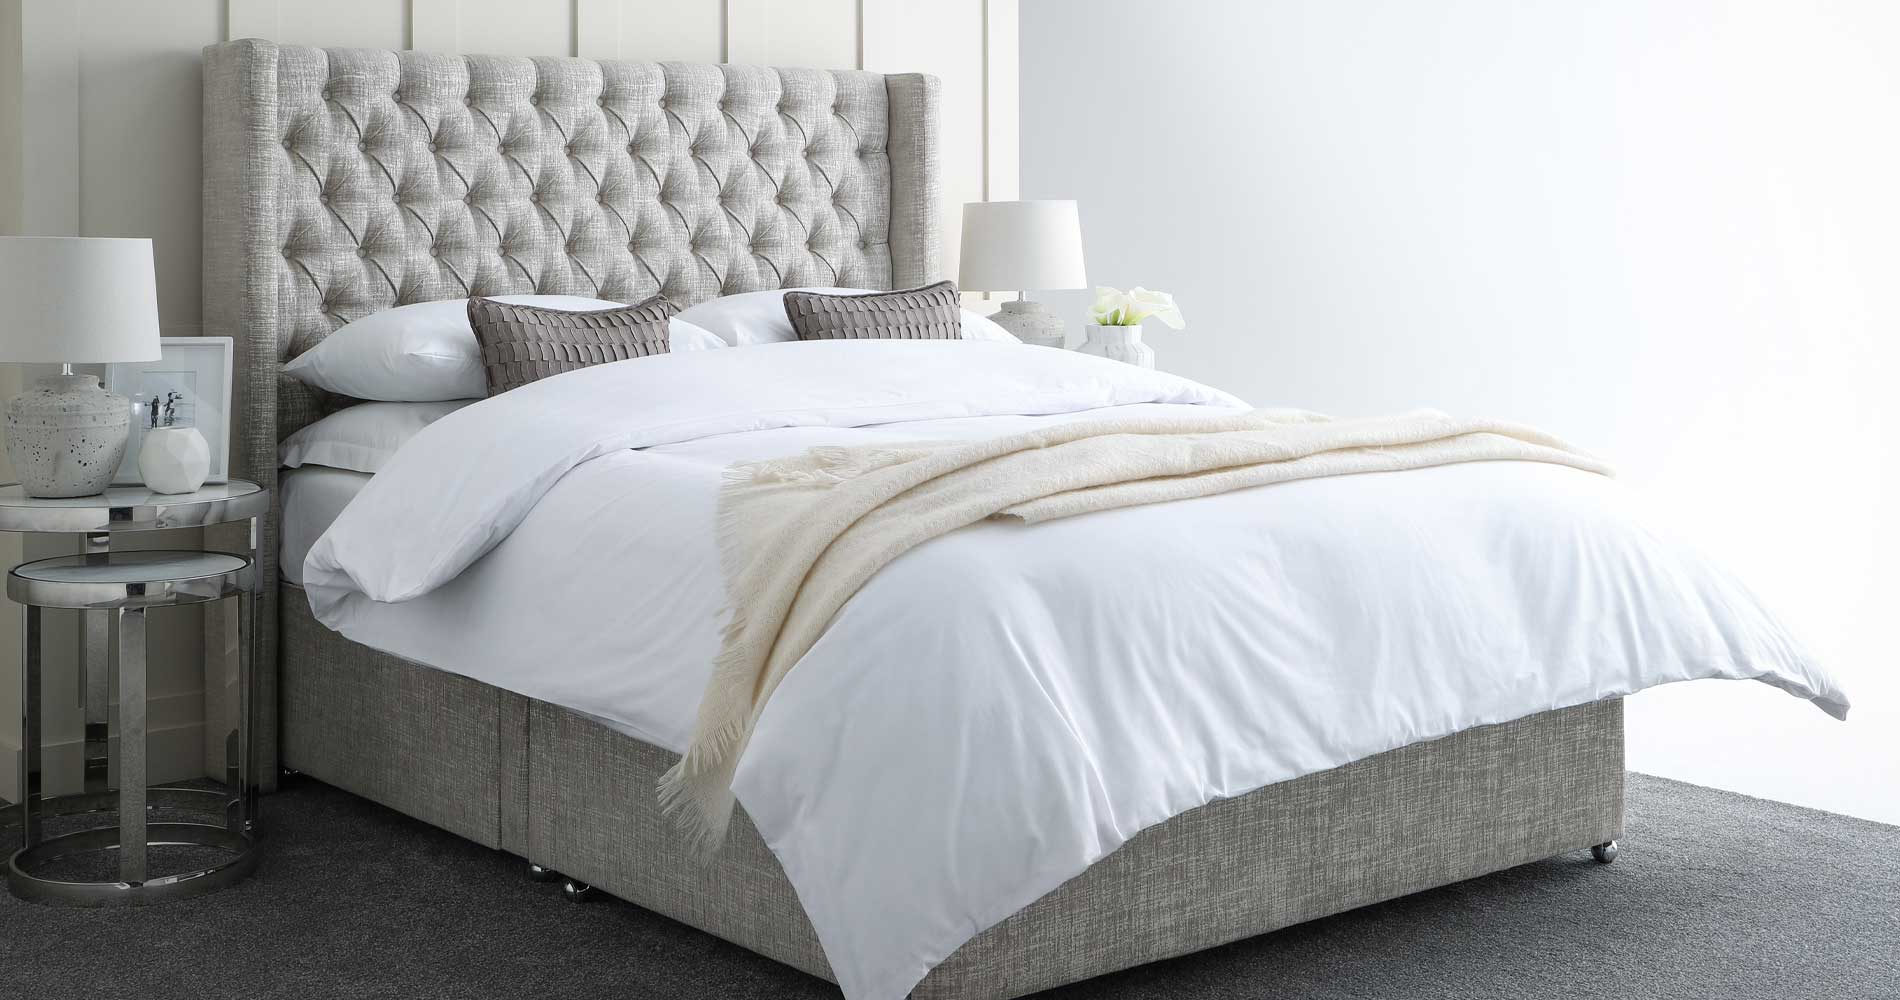 Winged Beds | Winged Headboard